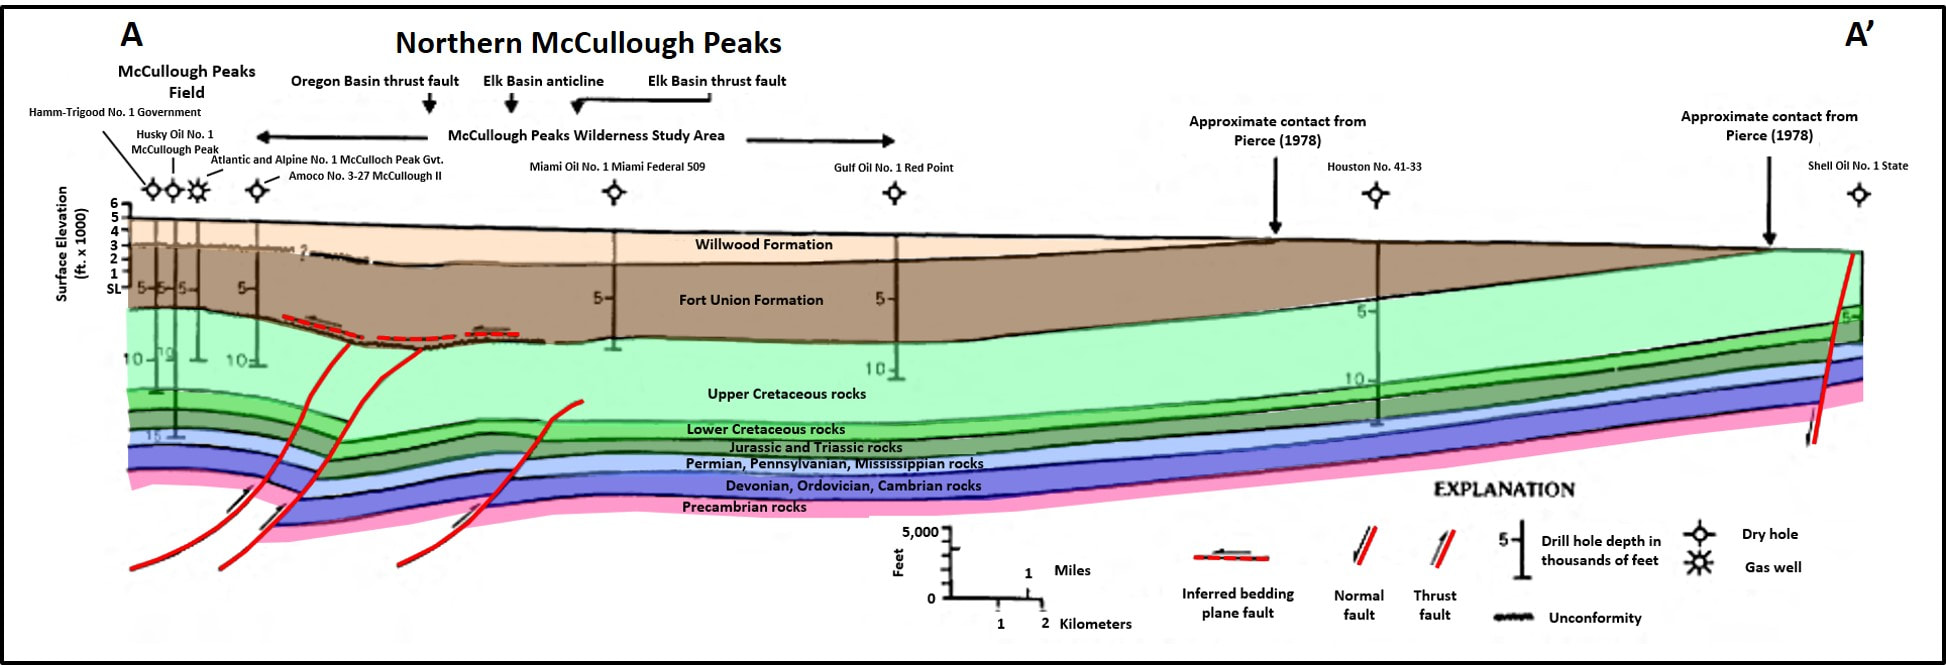 McCullough Peaks structural geology cross section, Bighorn Basin, Wyoming